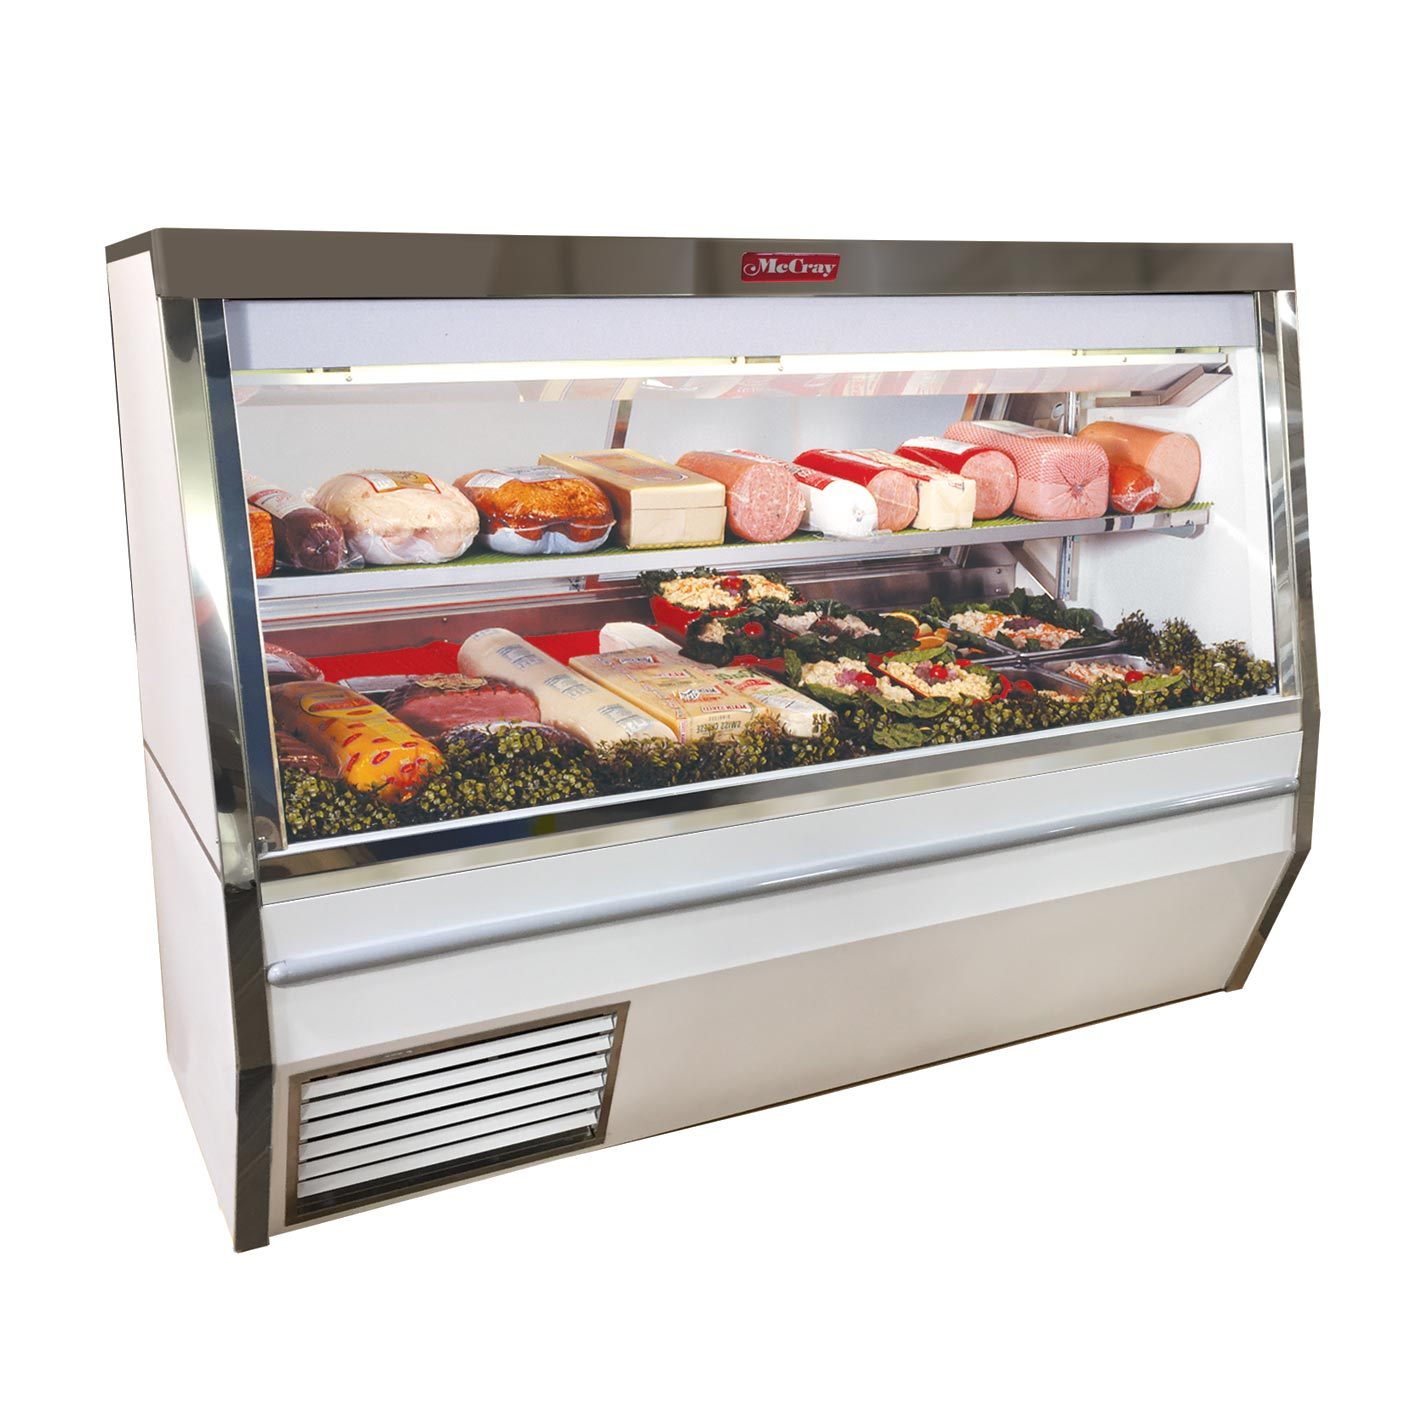 Howard-McCray SC-CDS34N-10-LED display case, refrigerated deli